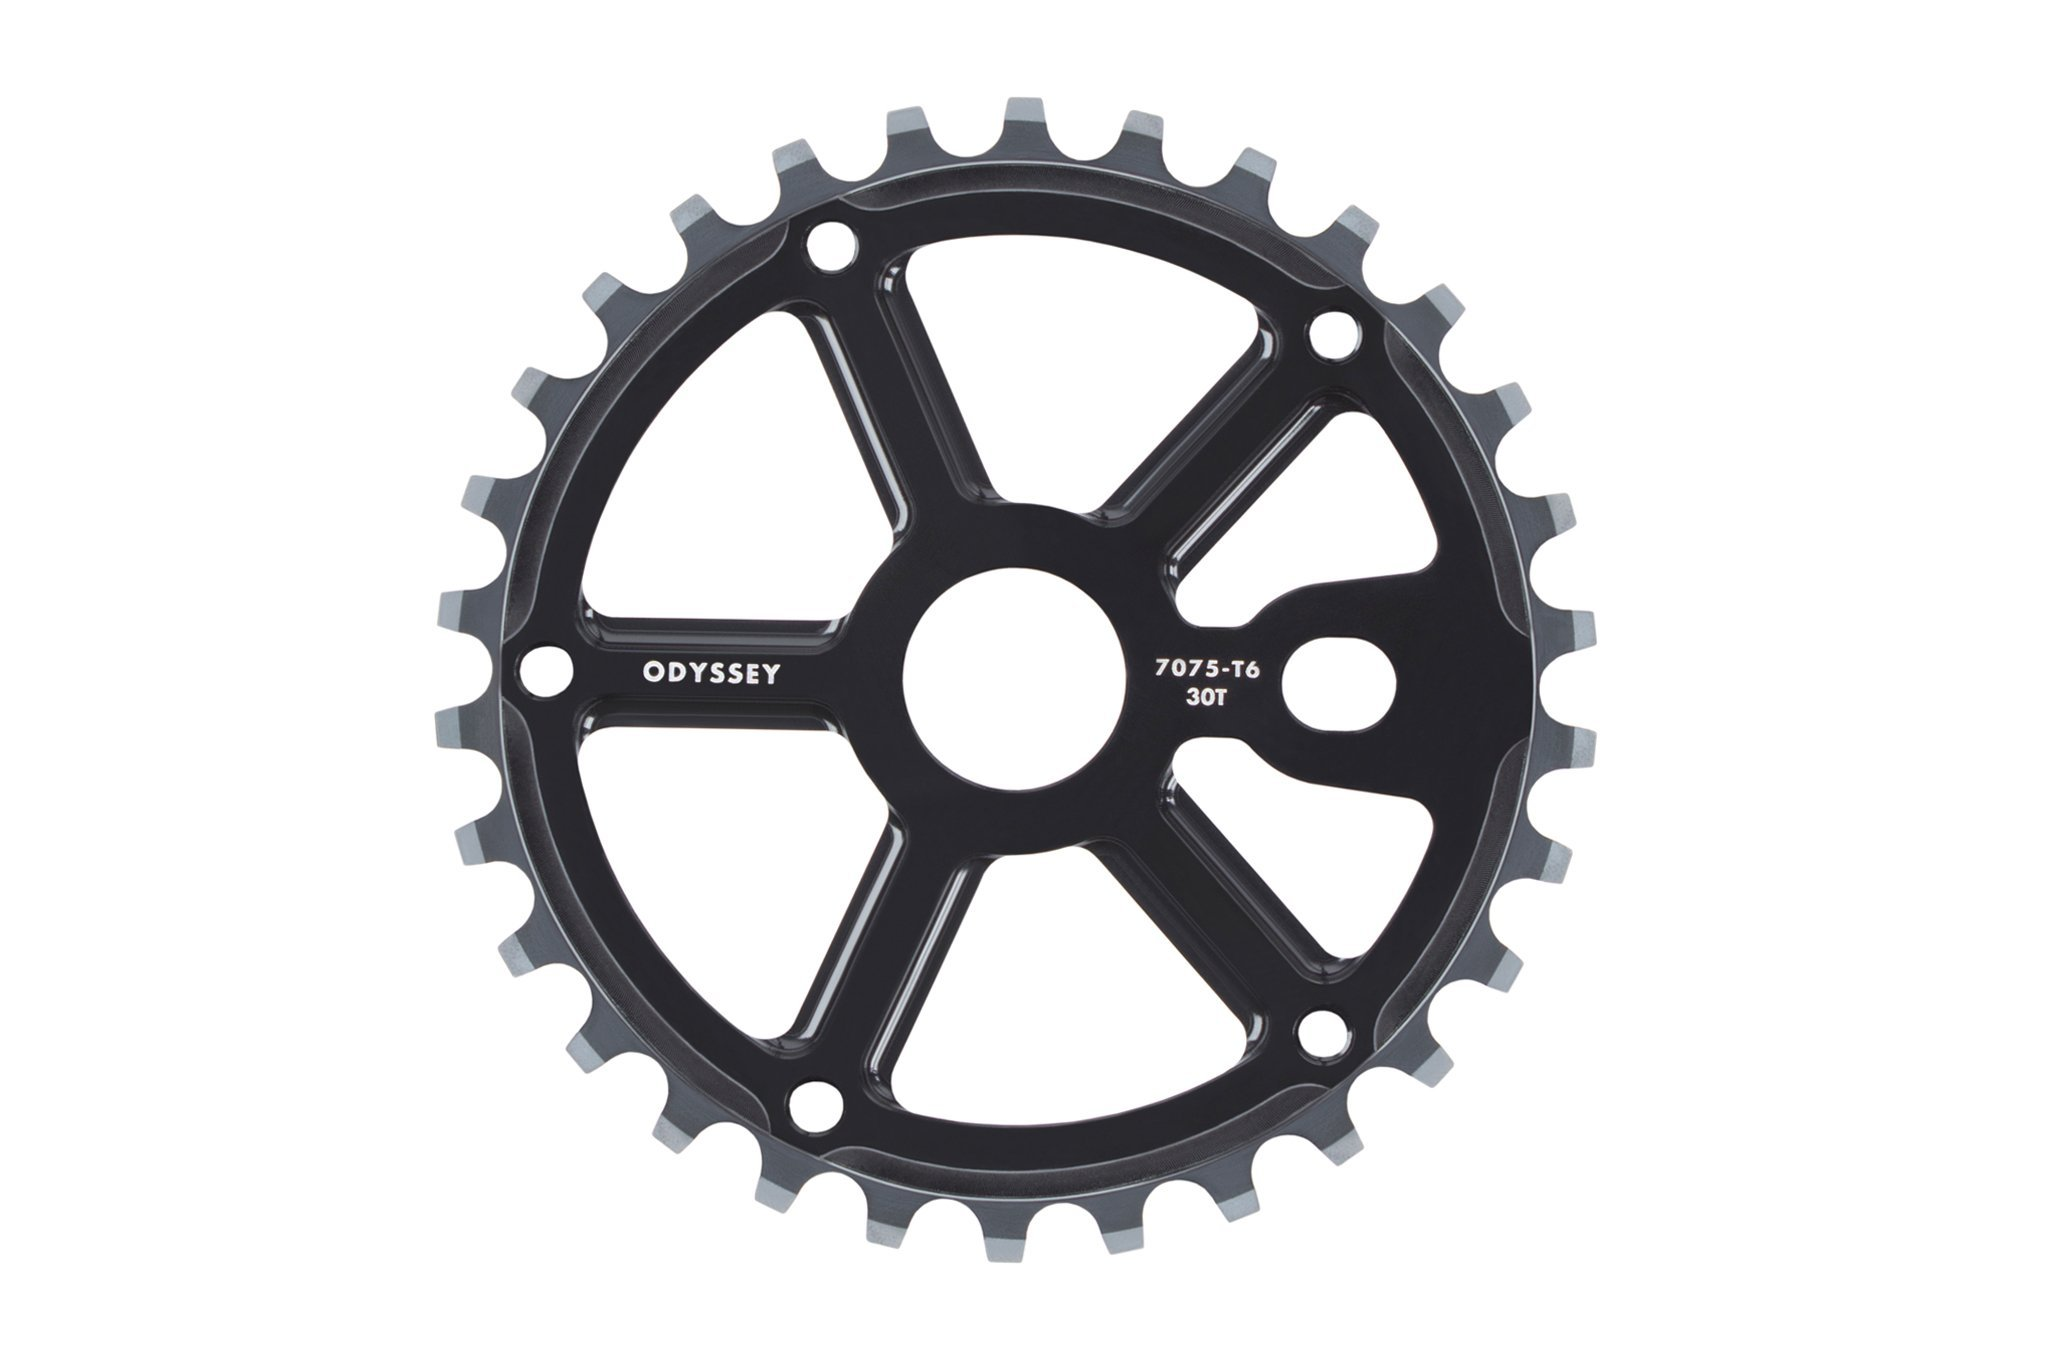 COURONNE ODYSSEY UTILITY PRO 30 DENTS